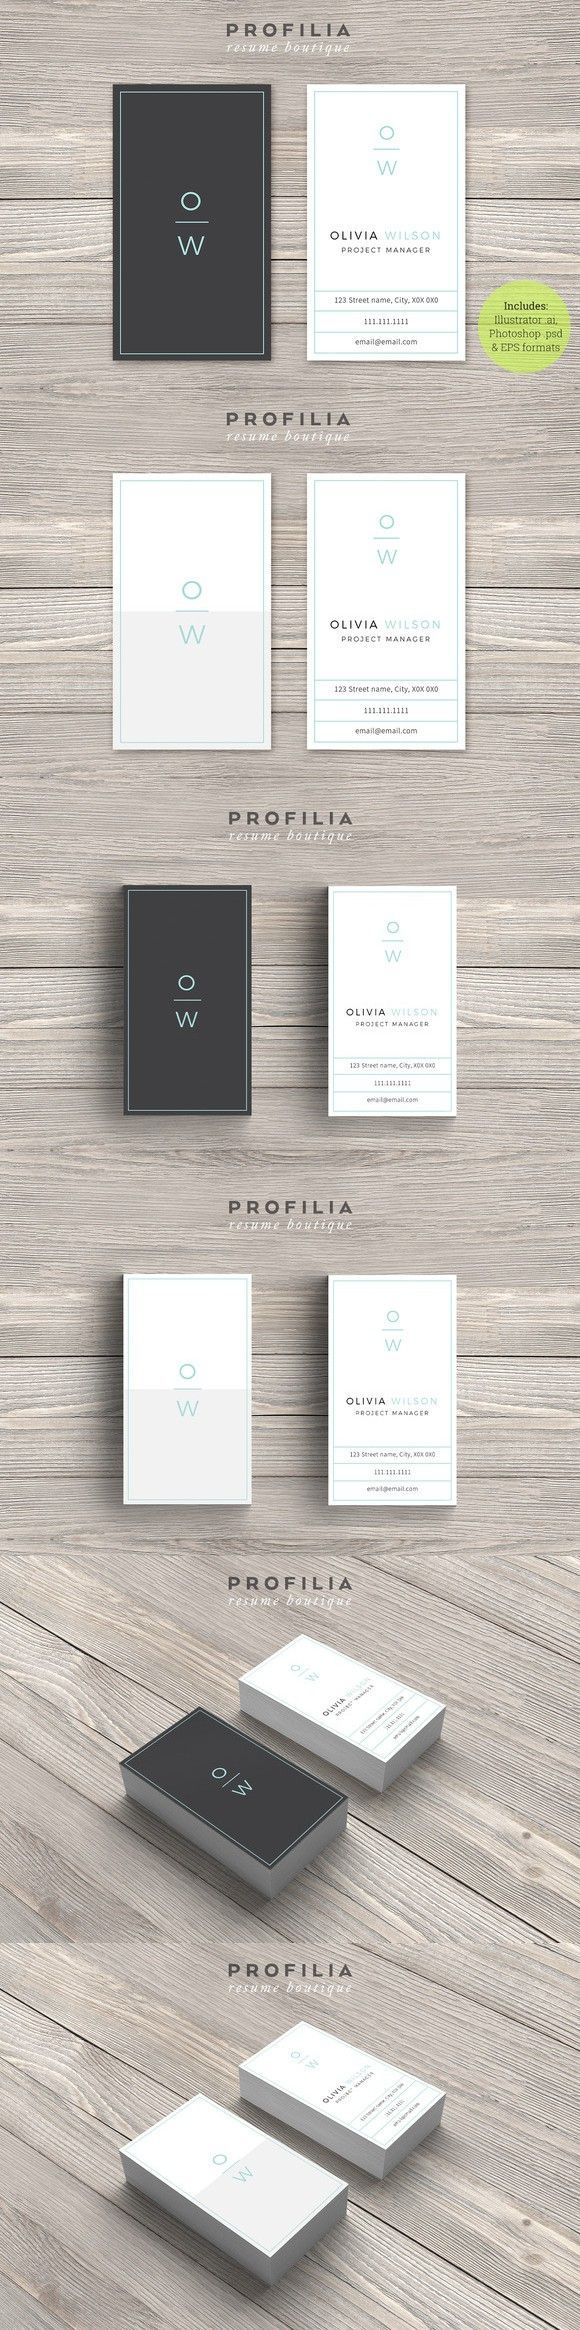 70 Best Business Cards Images On Pinterest Business Cards